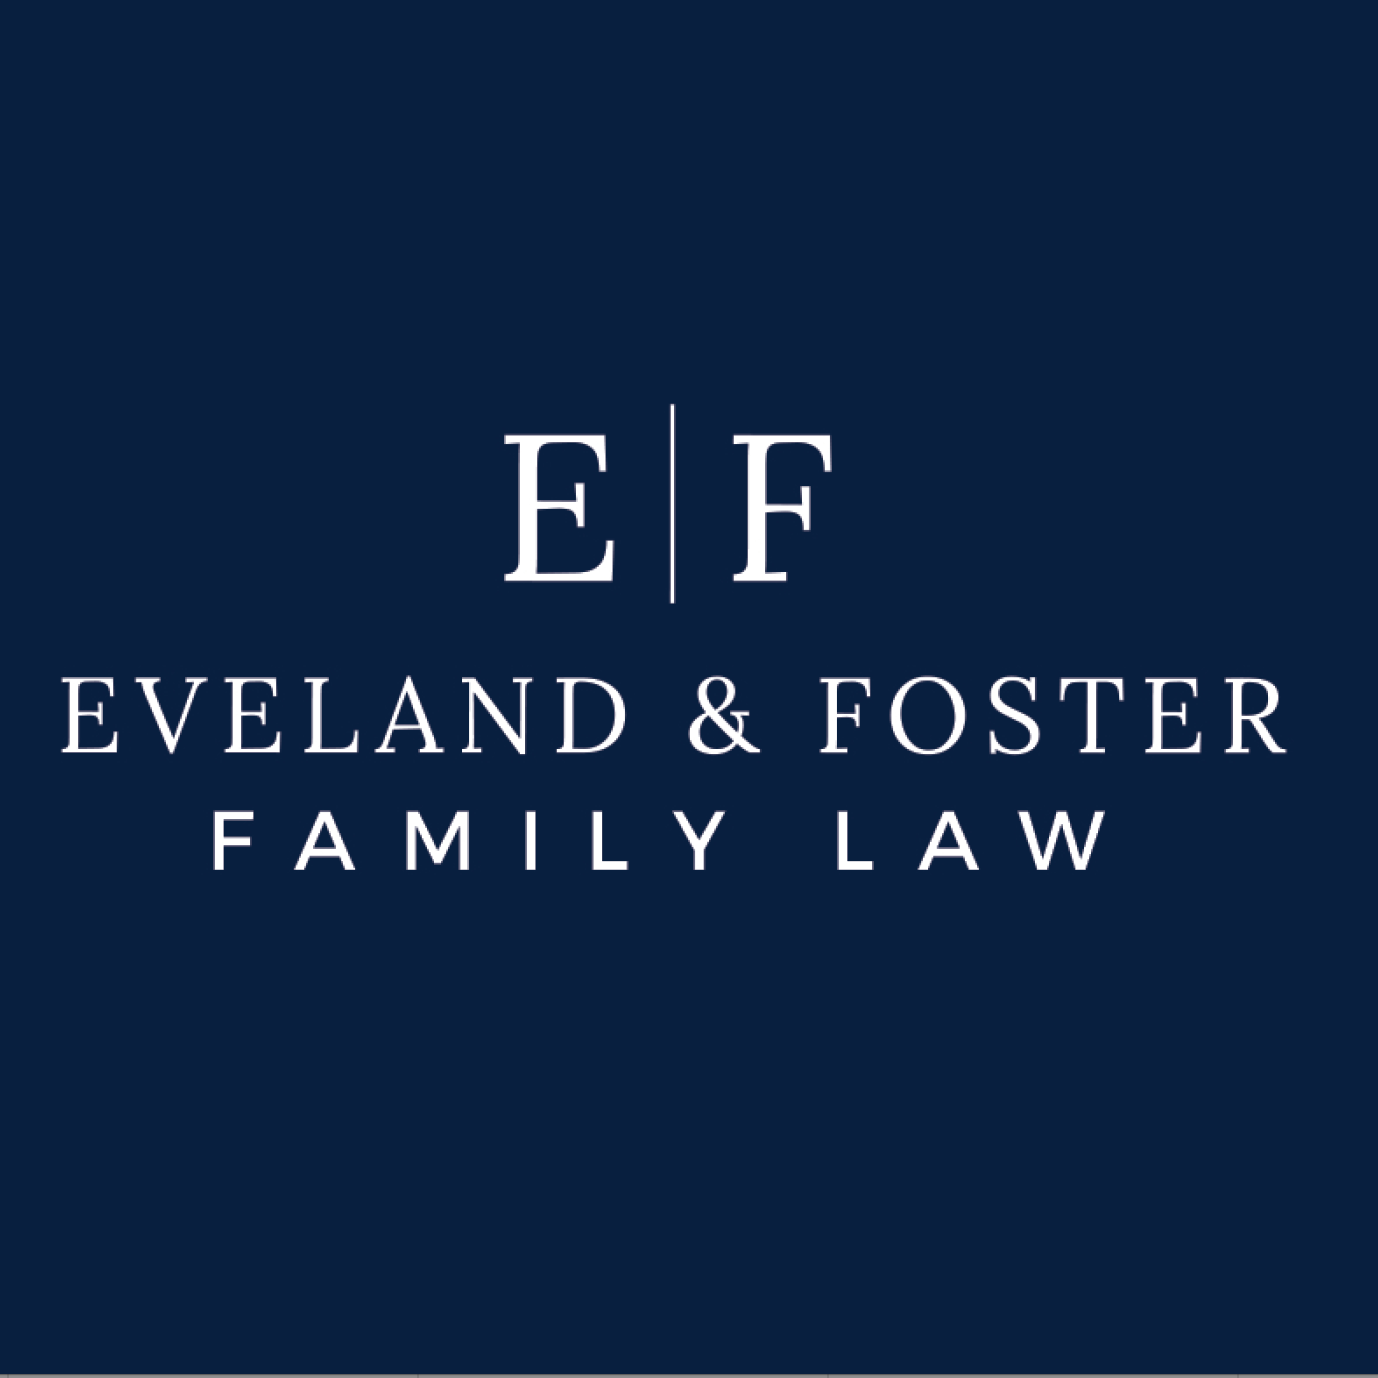 Eveland & Foster Family Law